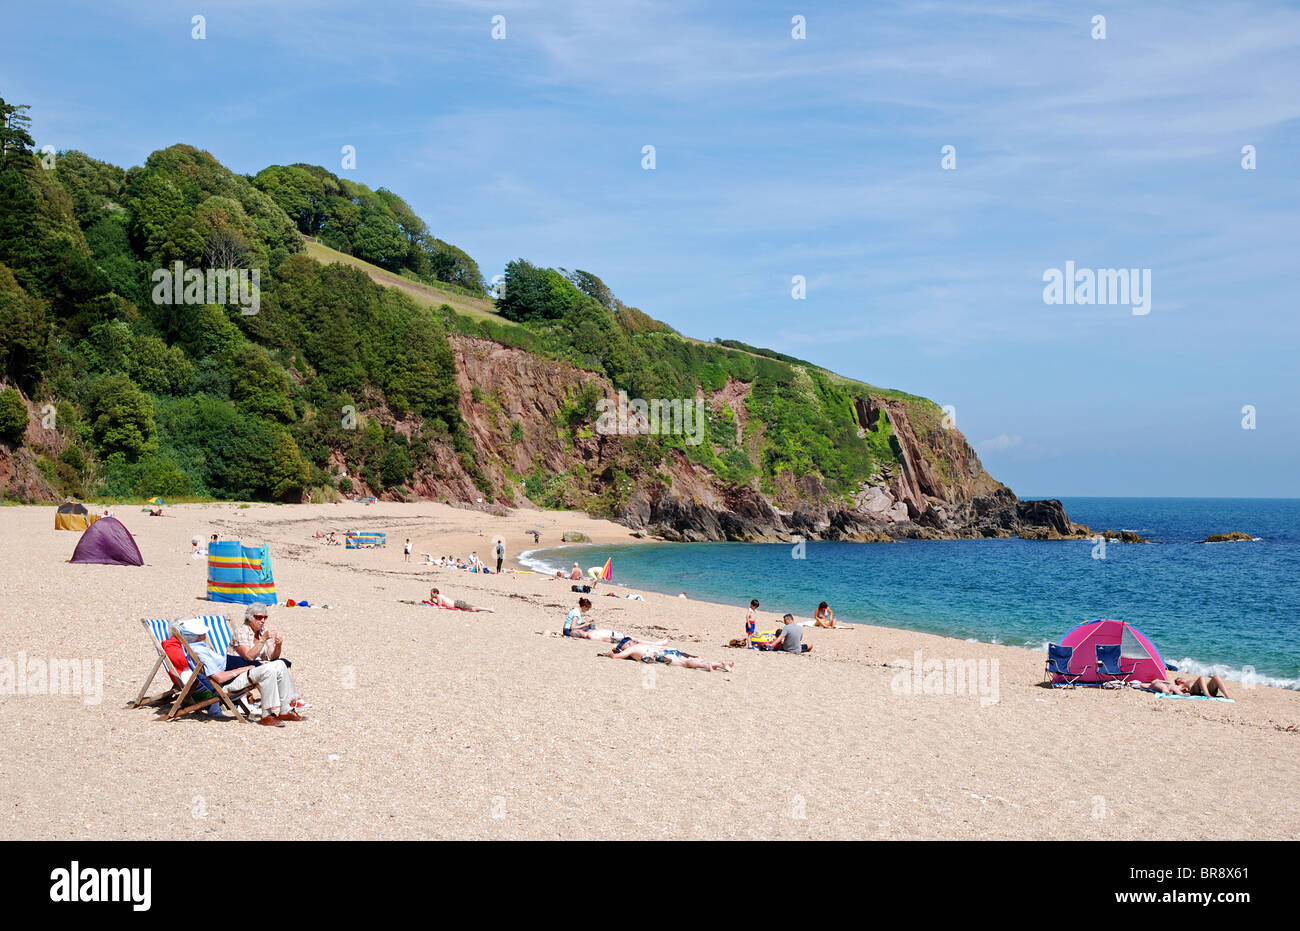 early summer at blackpool sands near dartmouth in devon, uk - Stock Image